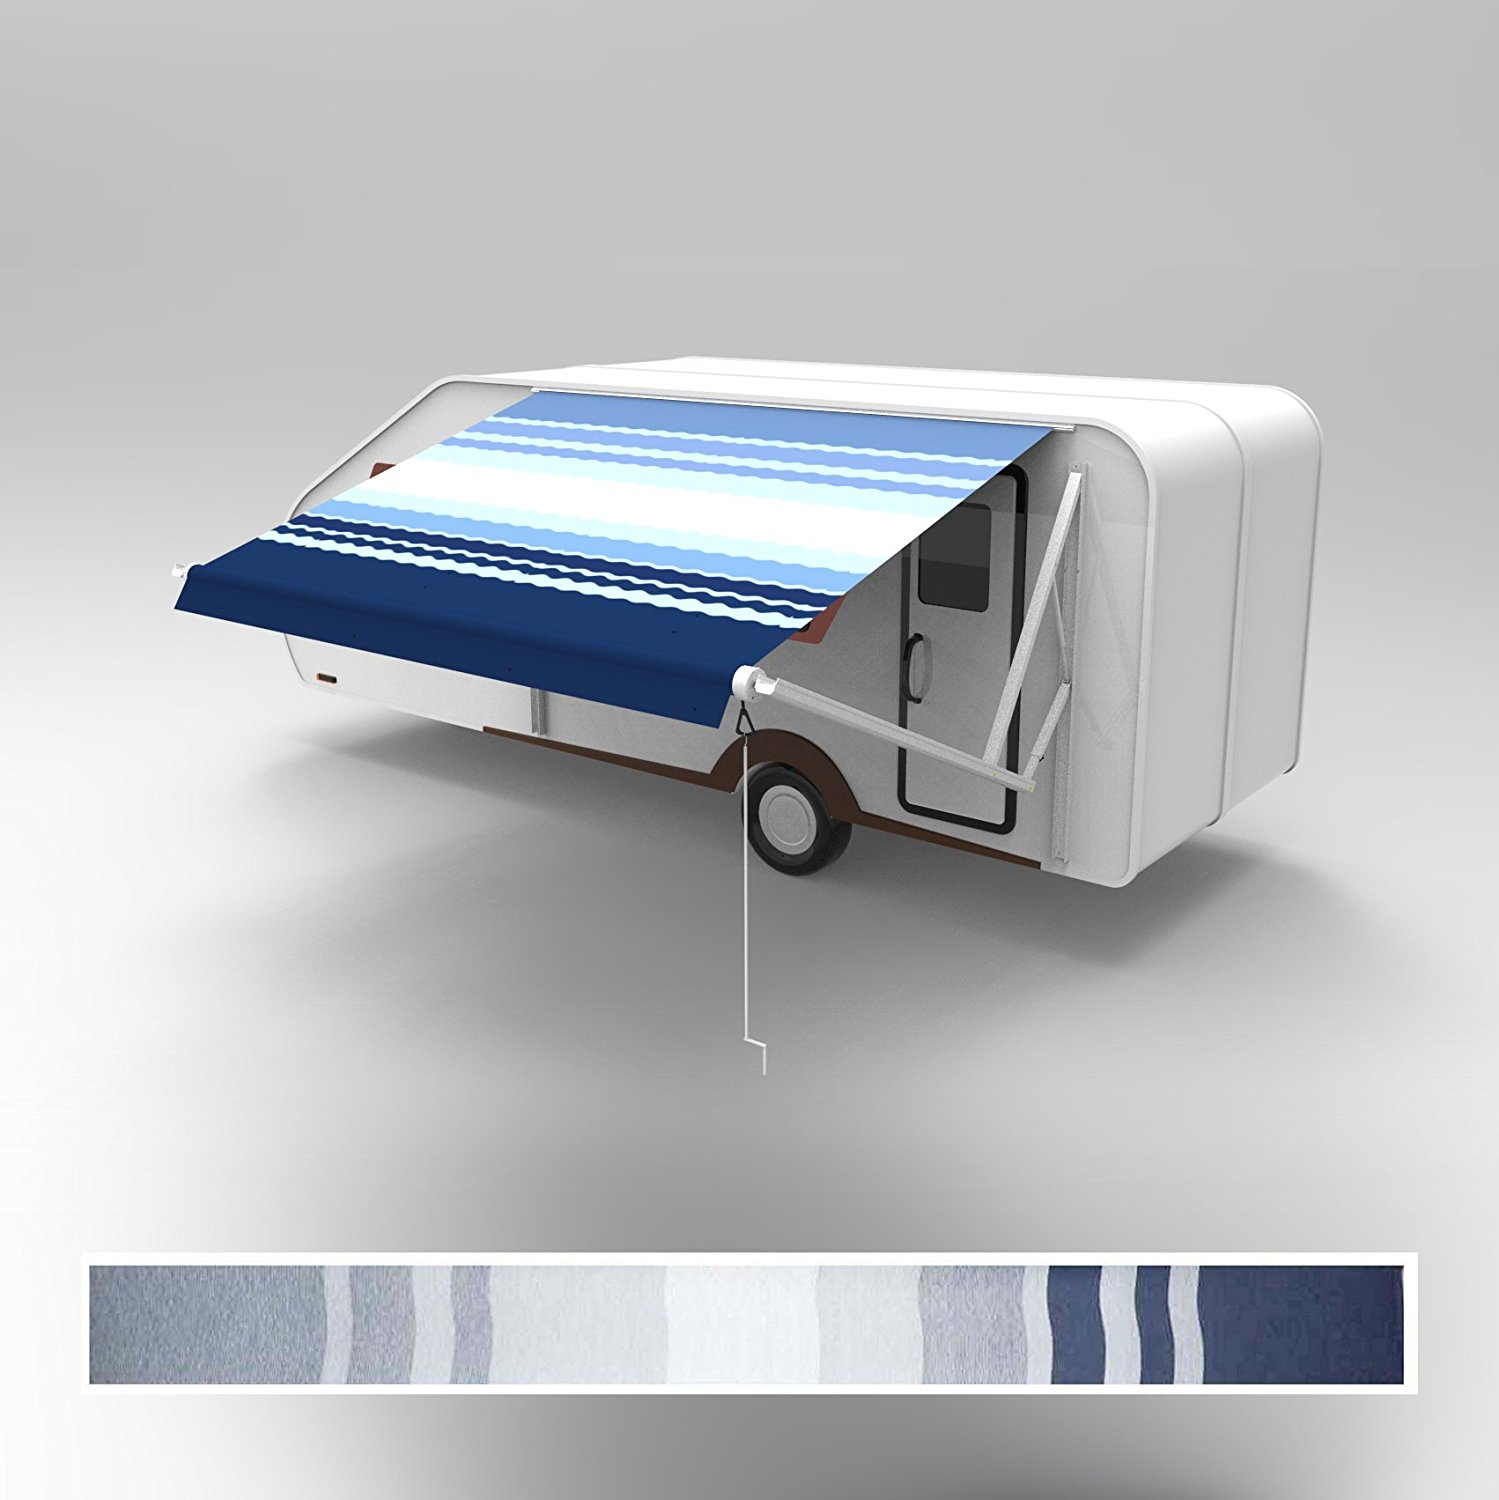 RVAWM20X8BLSTR32 Motorized Retractable RV/Patio Awning 20 x 8 Feet Blue and Whit